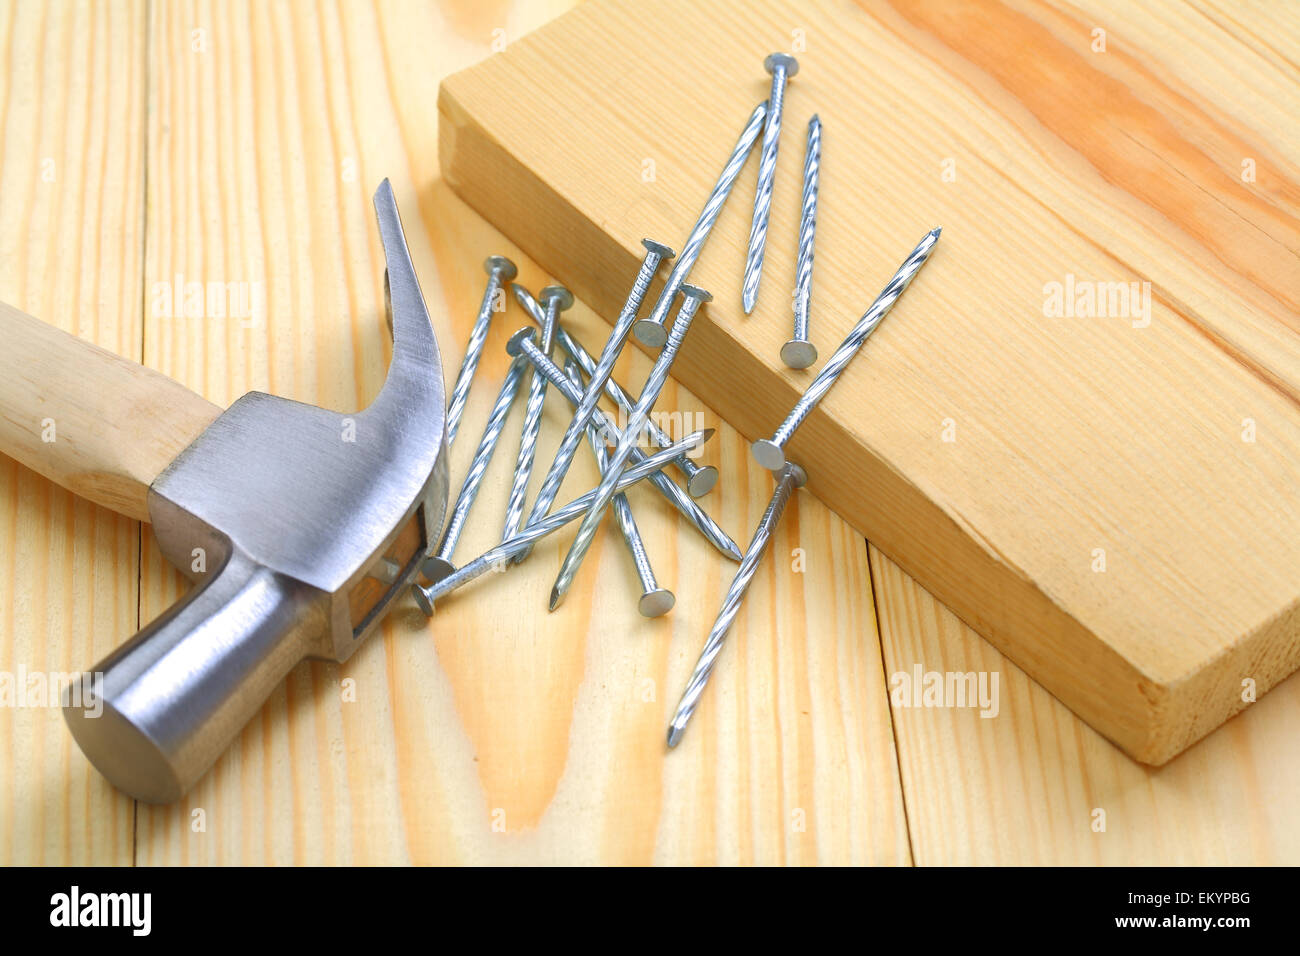 claw hammer with nails and timber on table - Stock Image